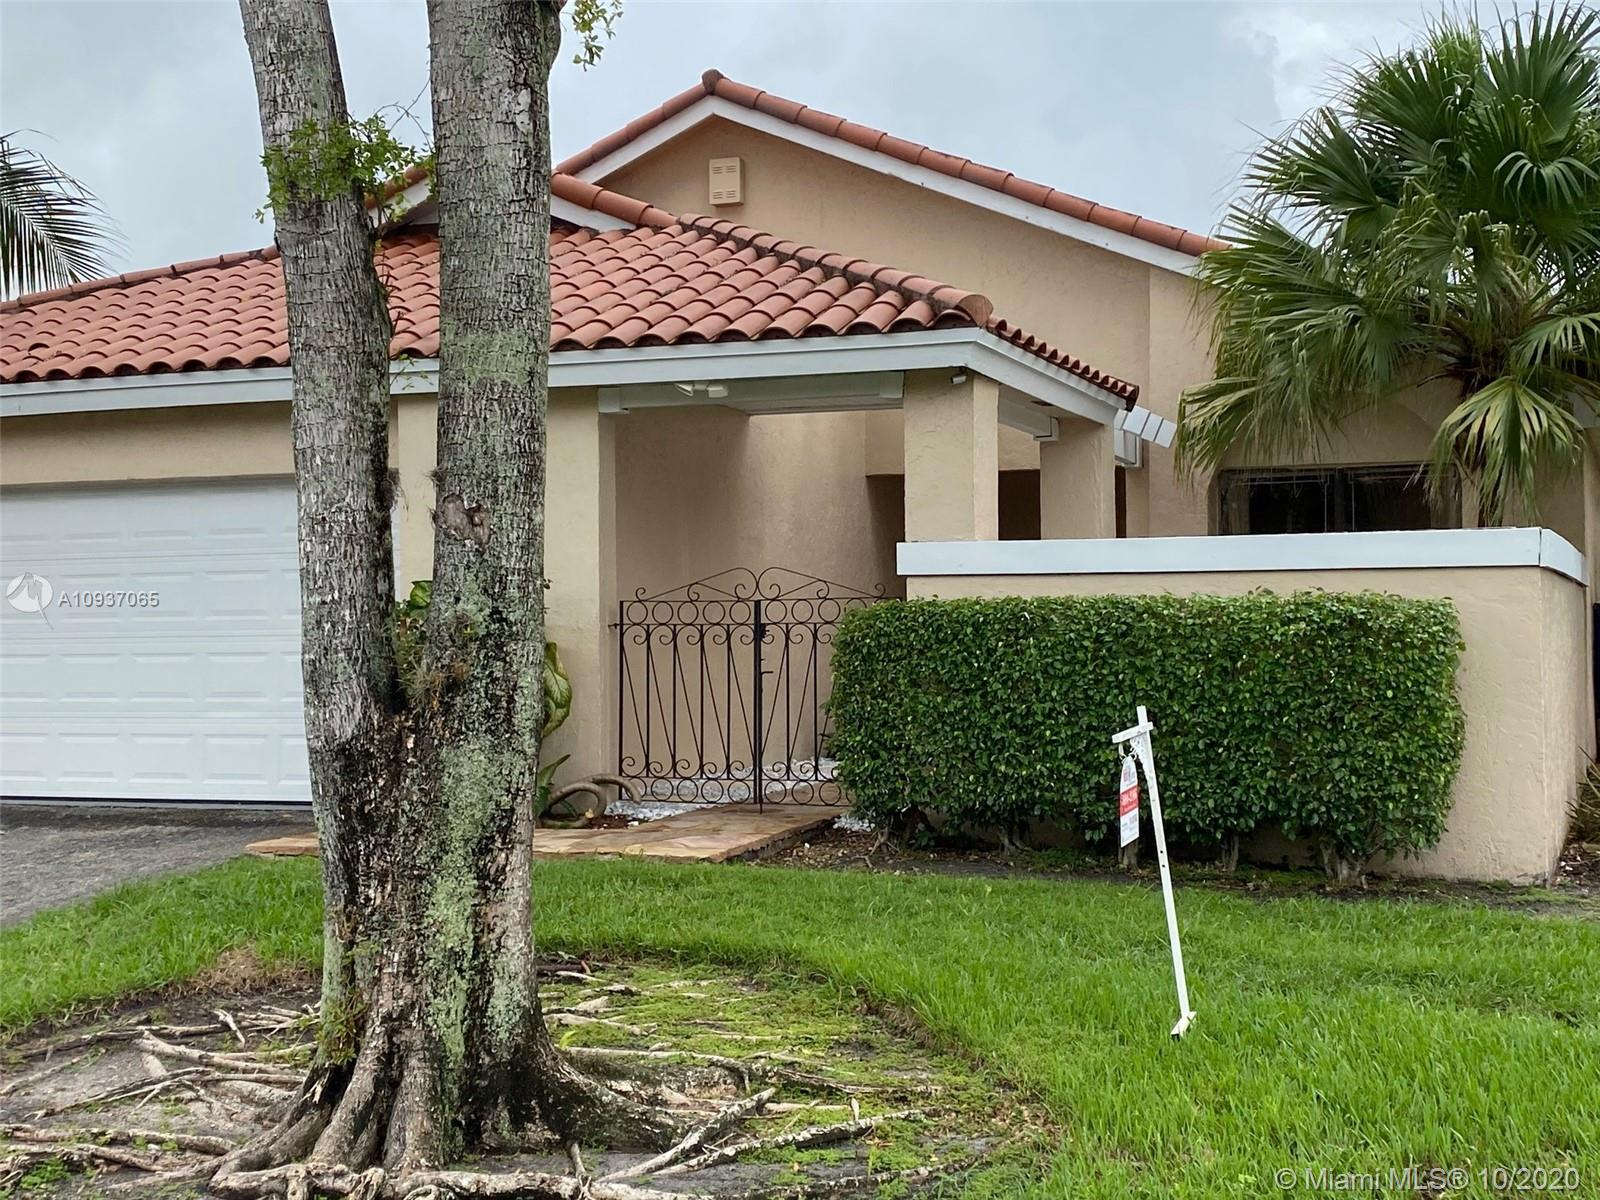 17348 NW 61 Ct S  For Sale A10937065, FL